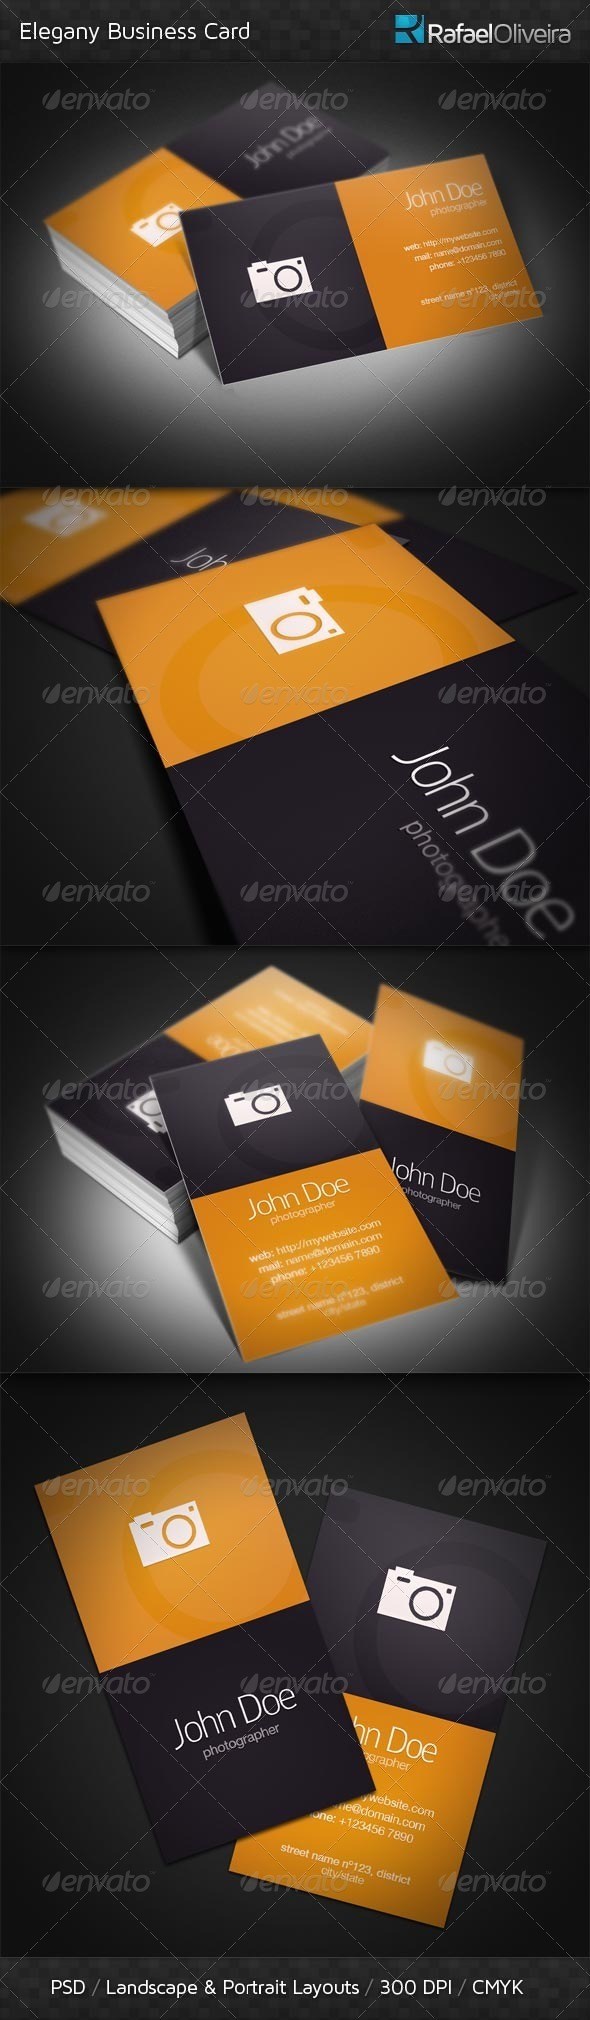 Elegany Business Card - Industry Specific Business Cards